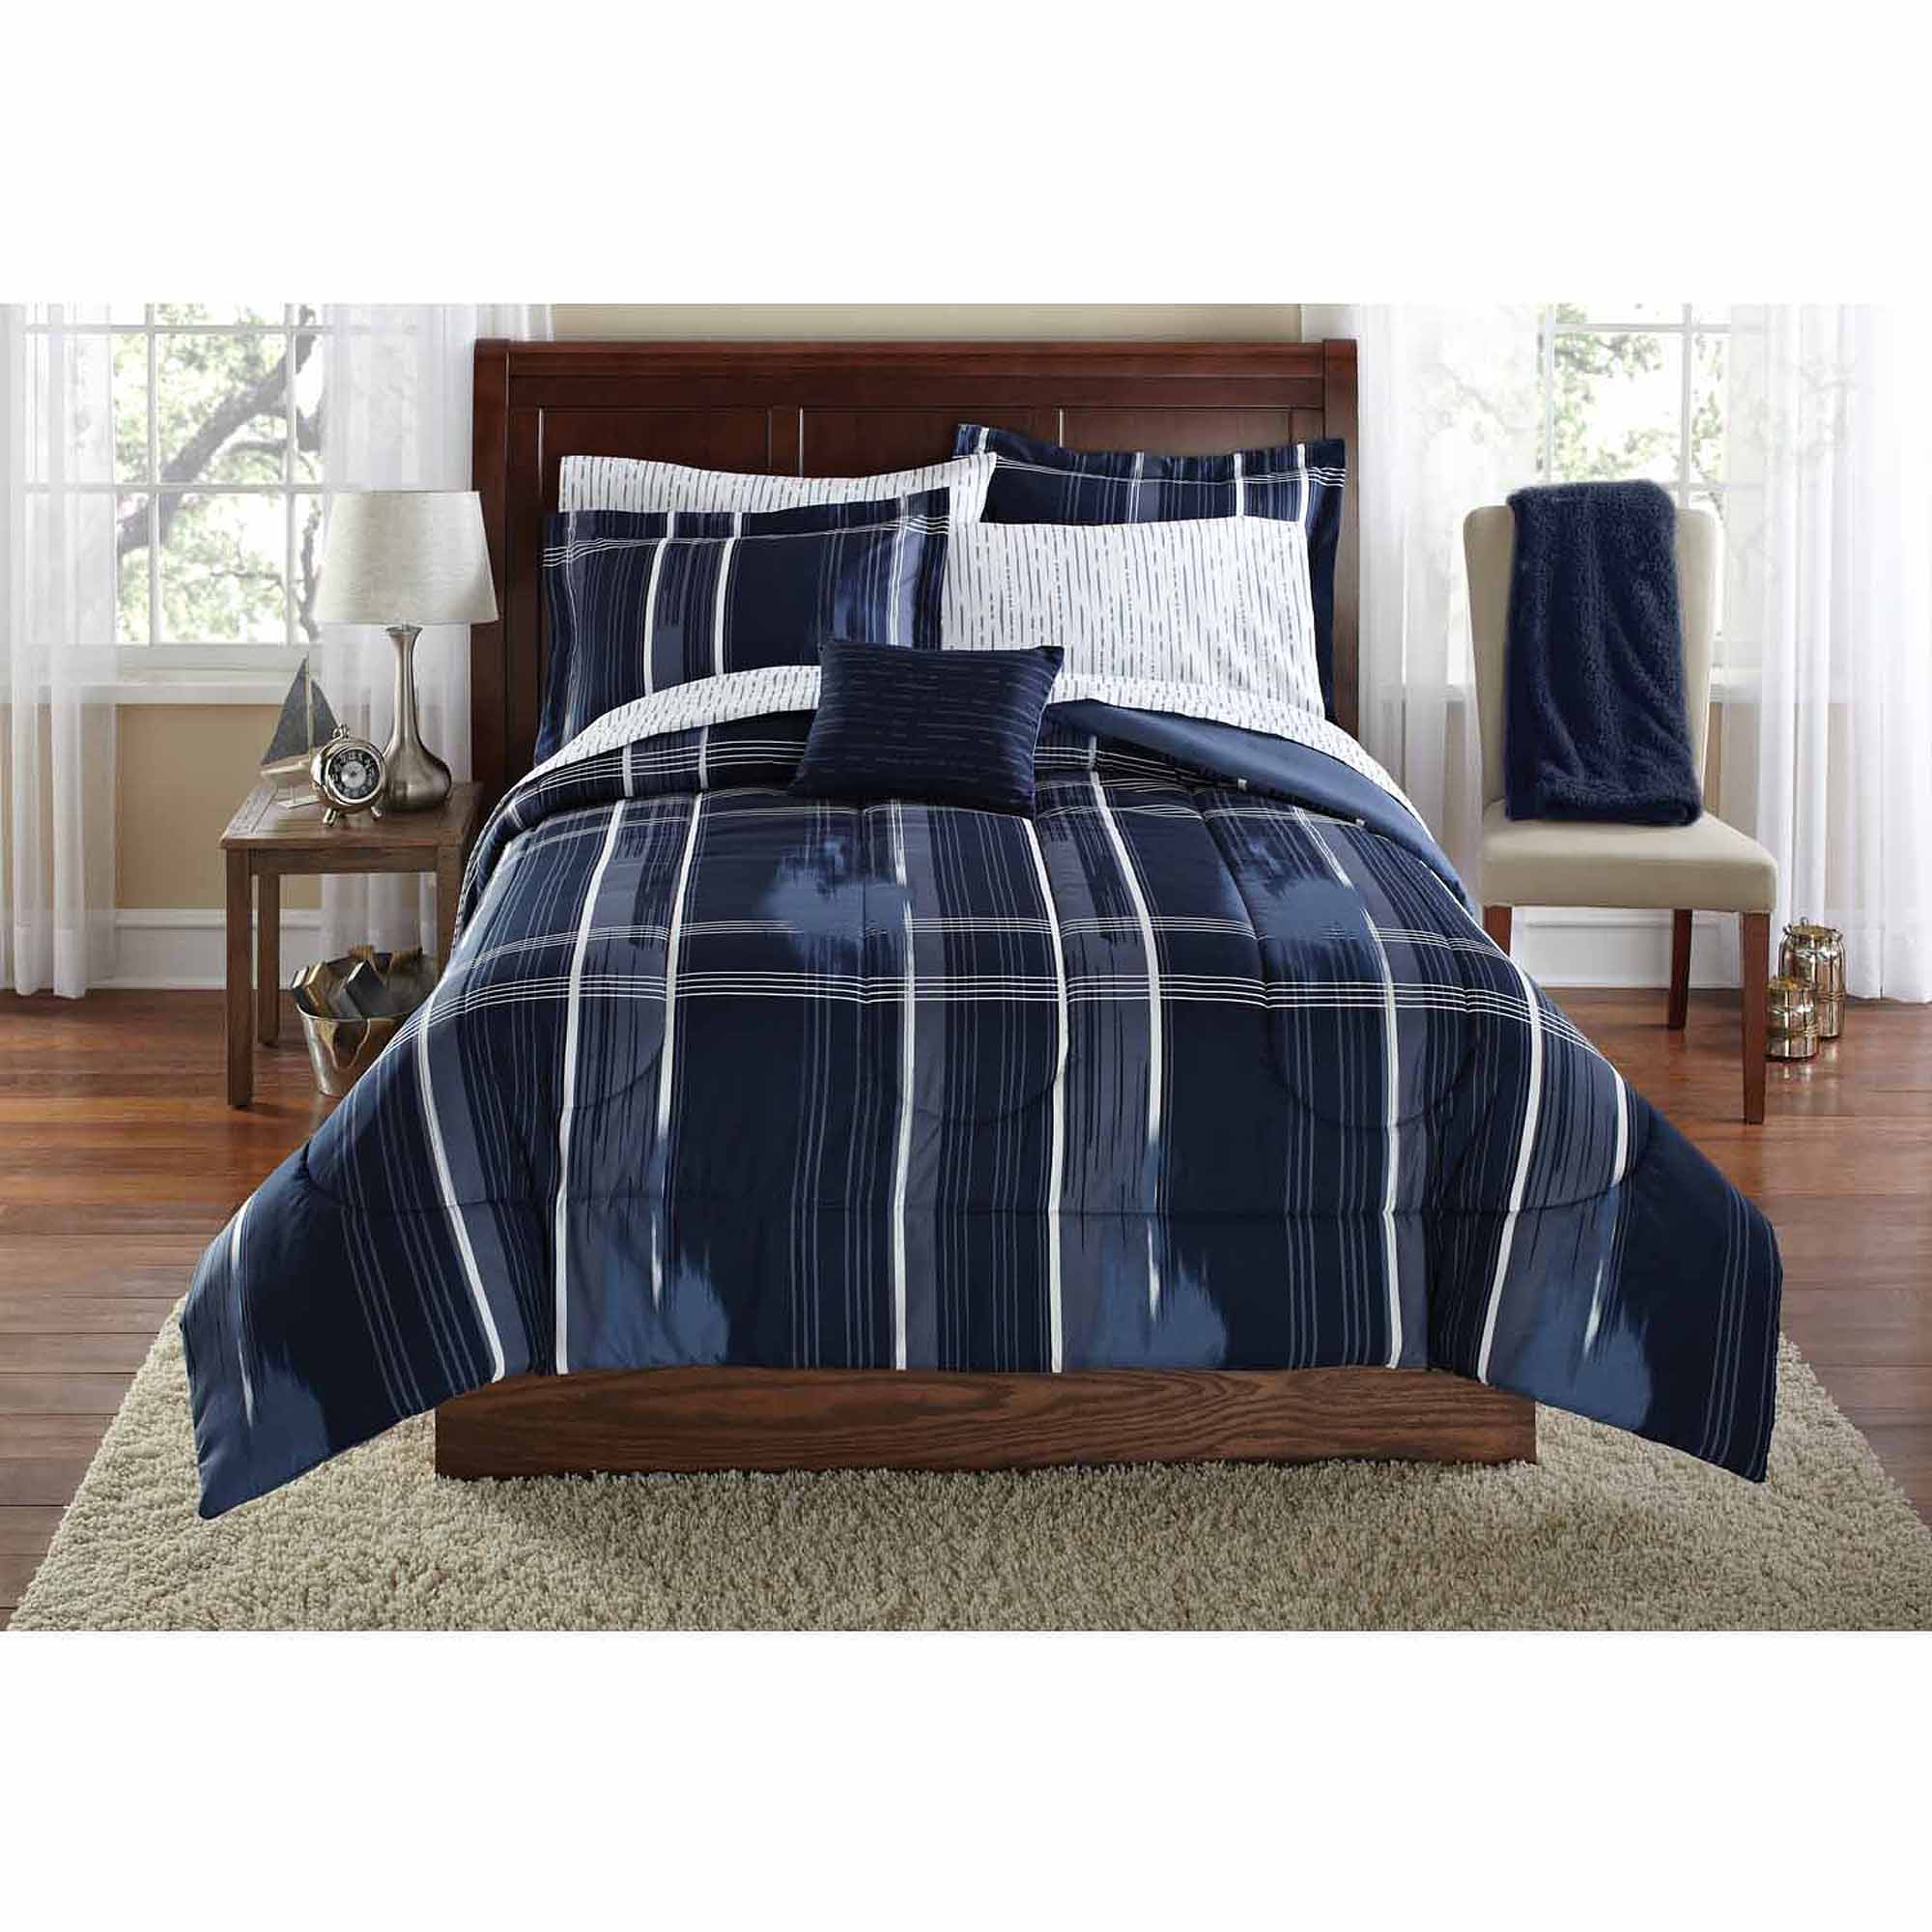 modern navy sets xl bedding bedroom cool room sheet comforter door full complete cute dorm size comforters set rooms sheets popular of twin college for